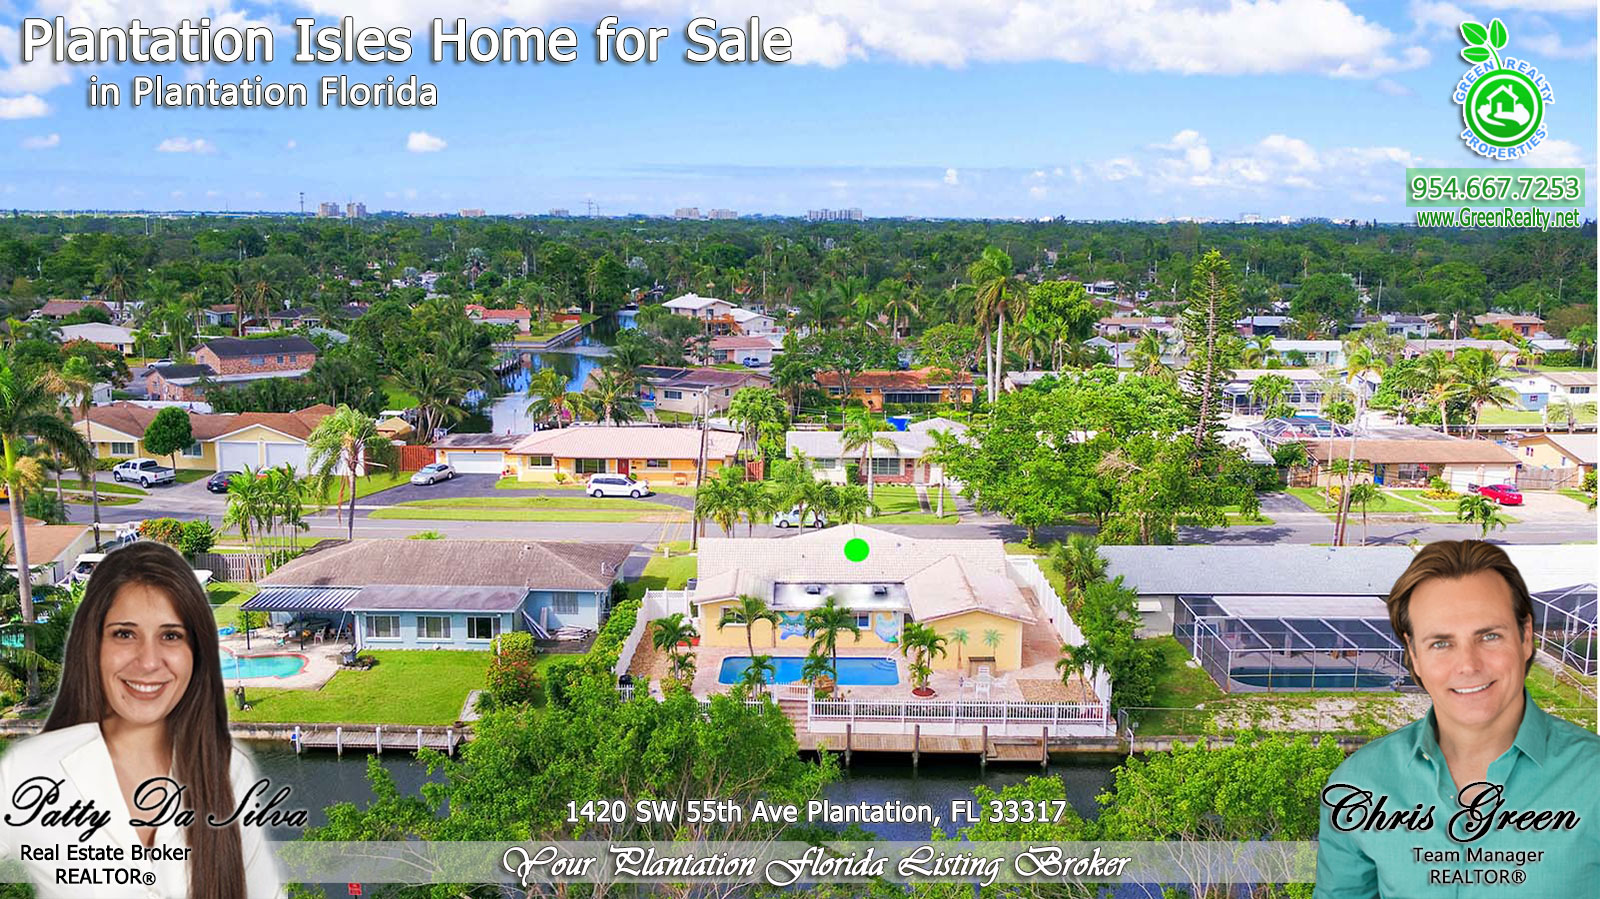 39 Plantation-Florida-Homes-For-Sale-pool